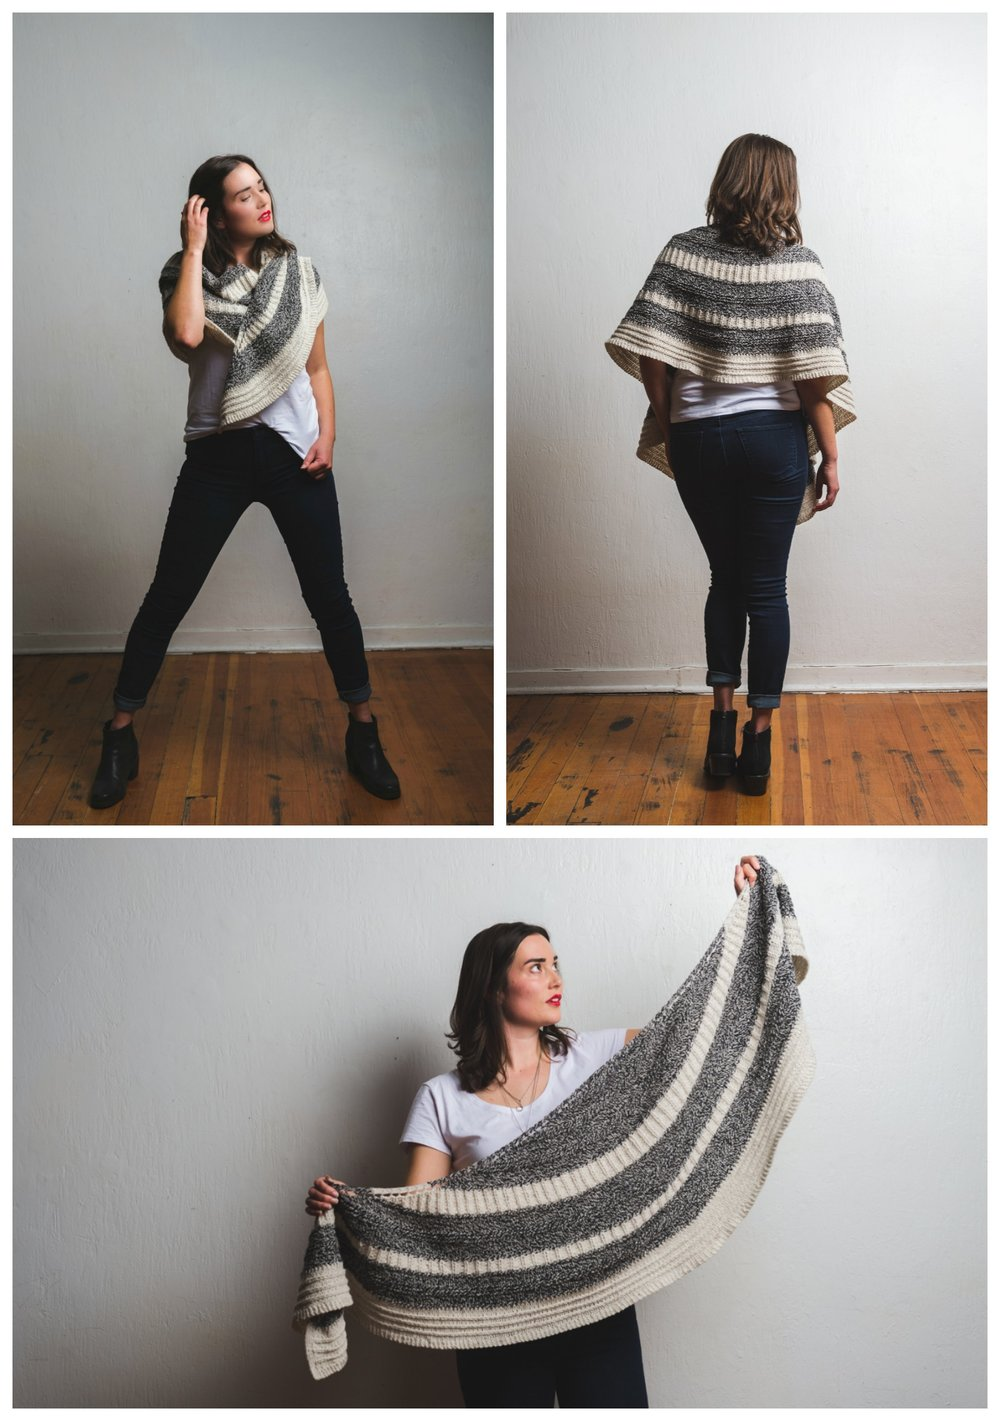 Feyre shawl knitting pattern by Shannon Cook of VeryShannon.com #feyreshawl